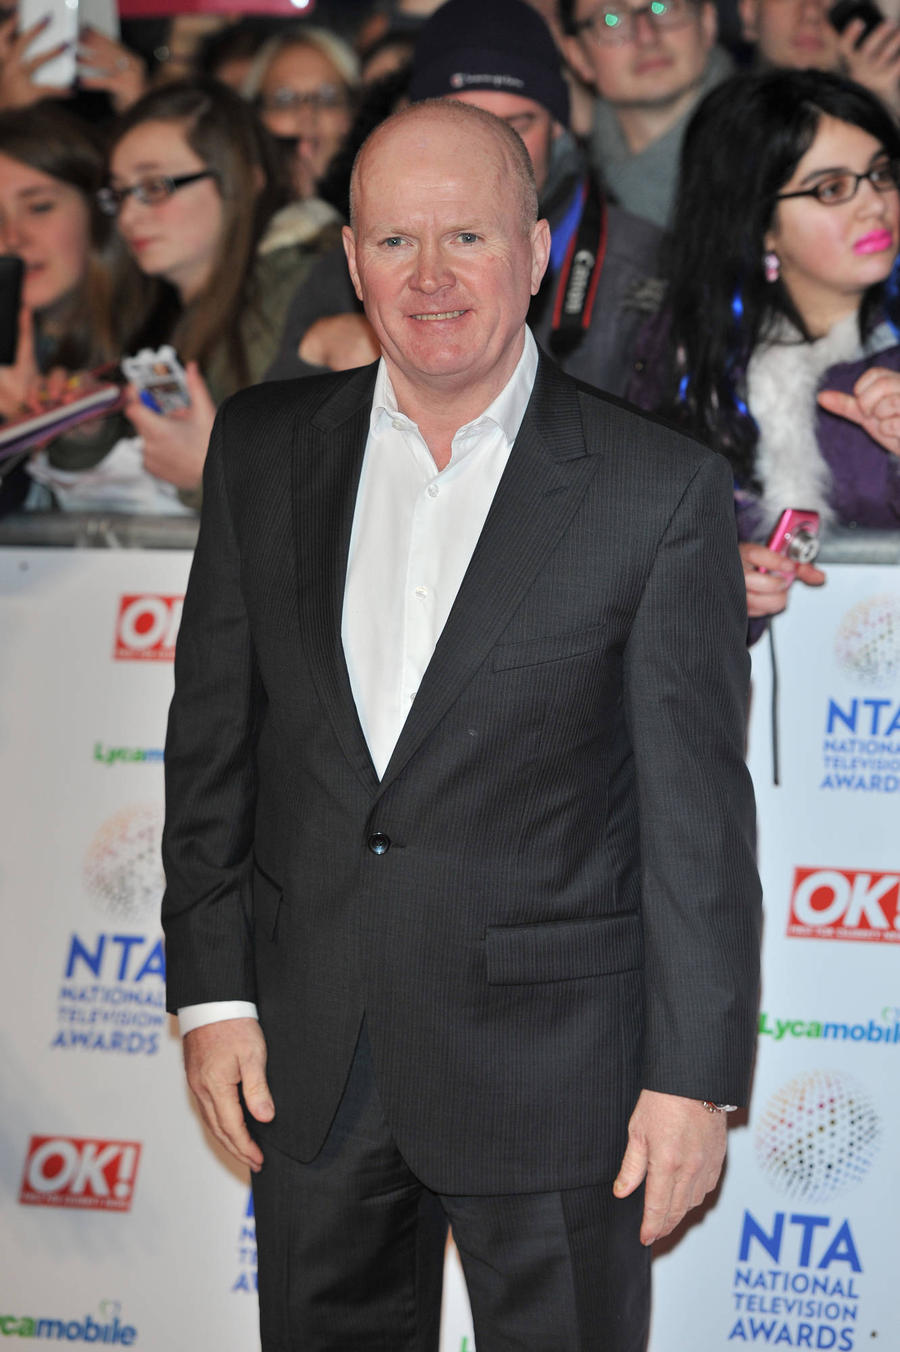 Steve Mcfadden Is A Five-time Dad